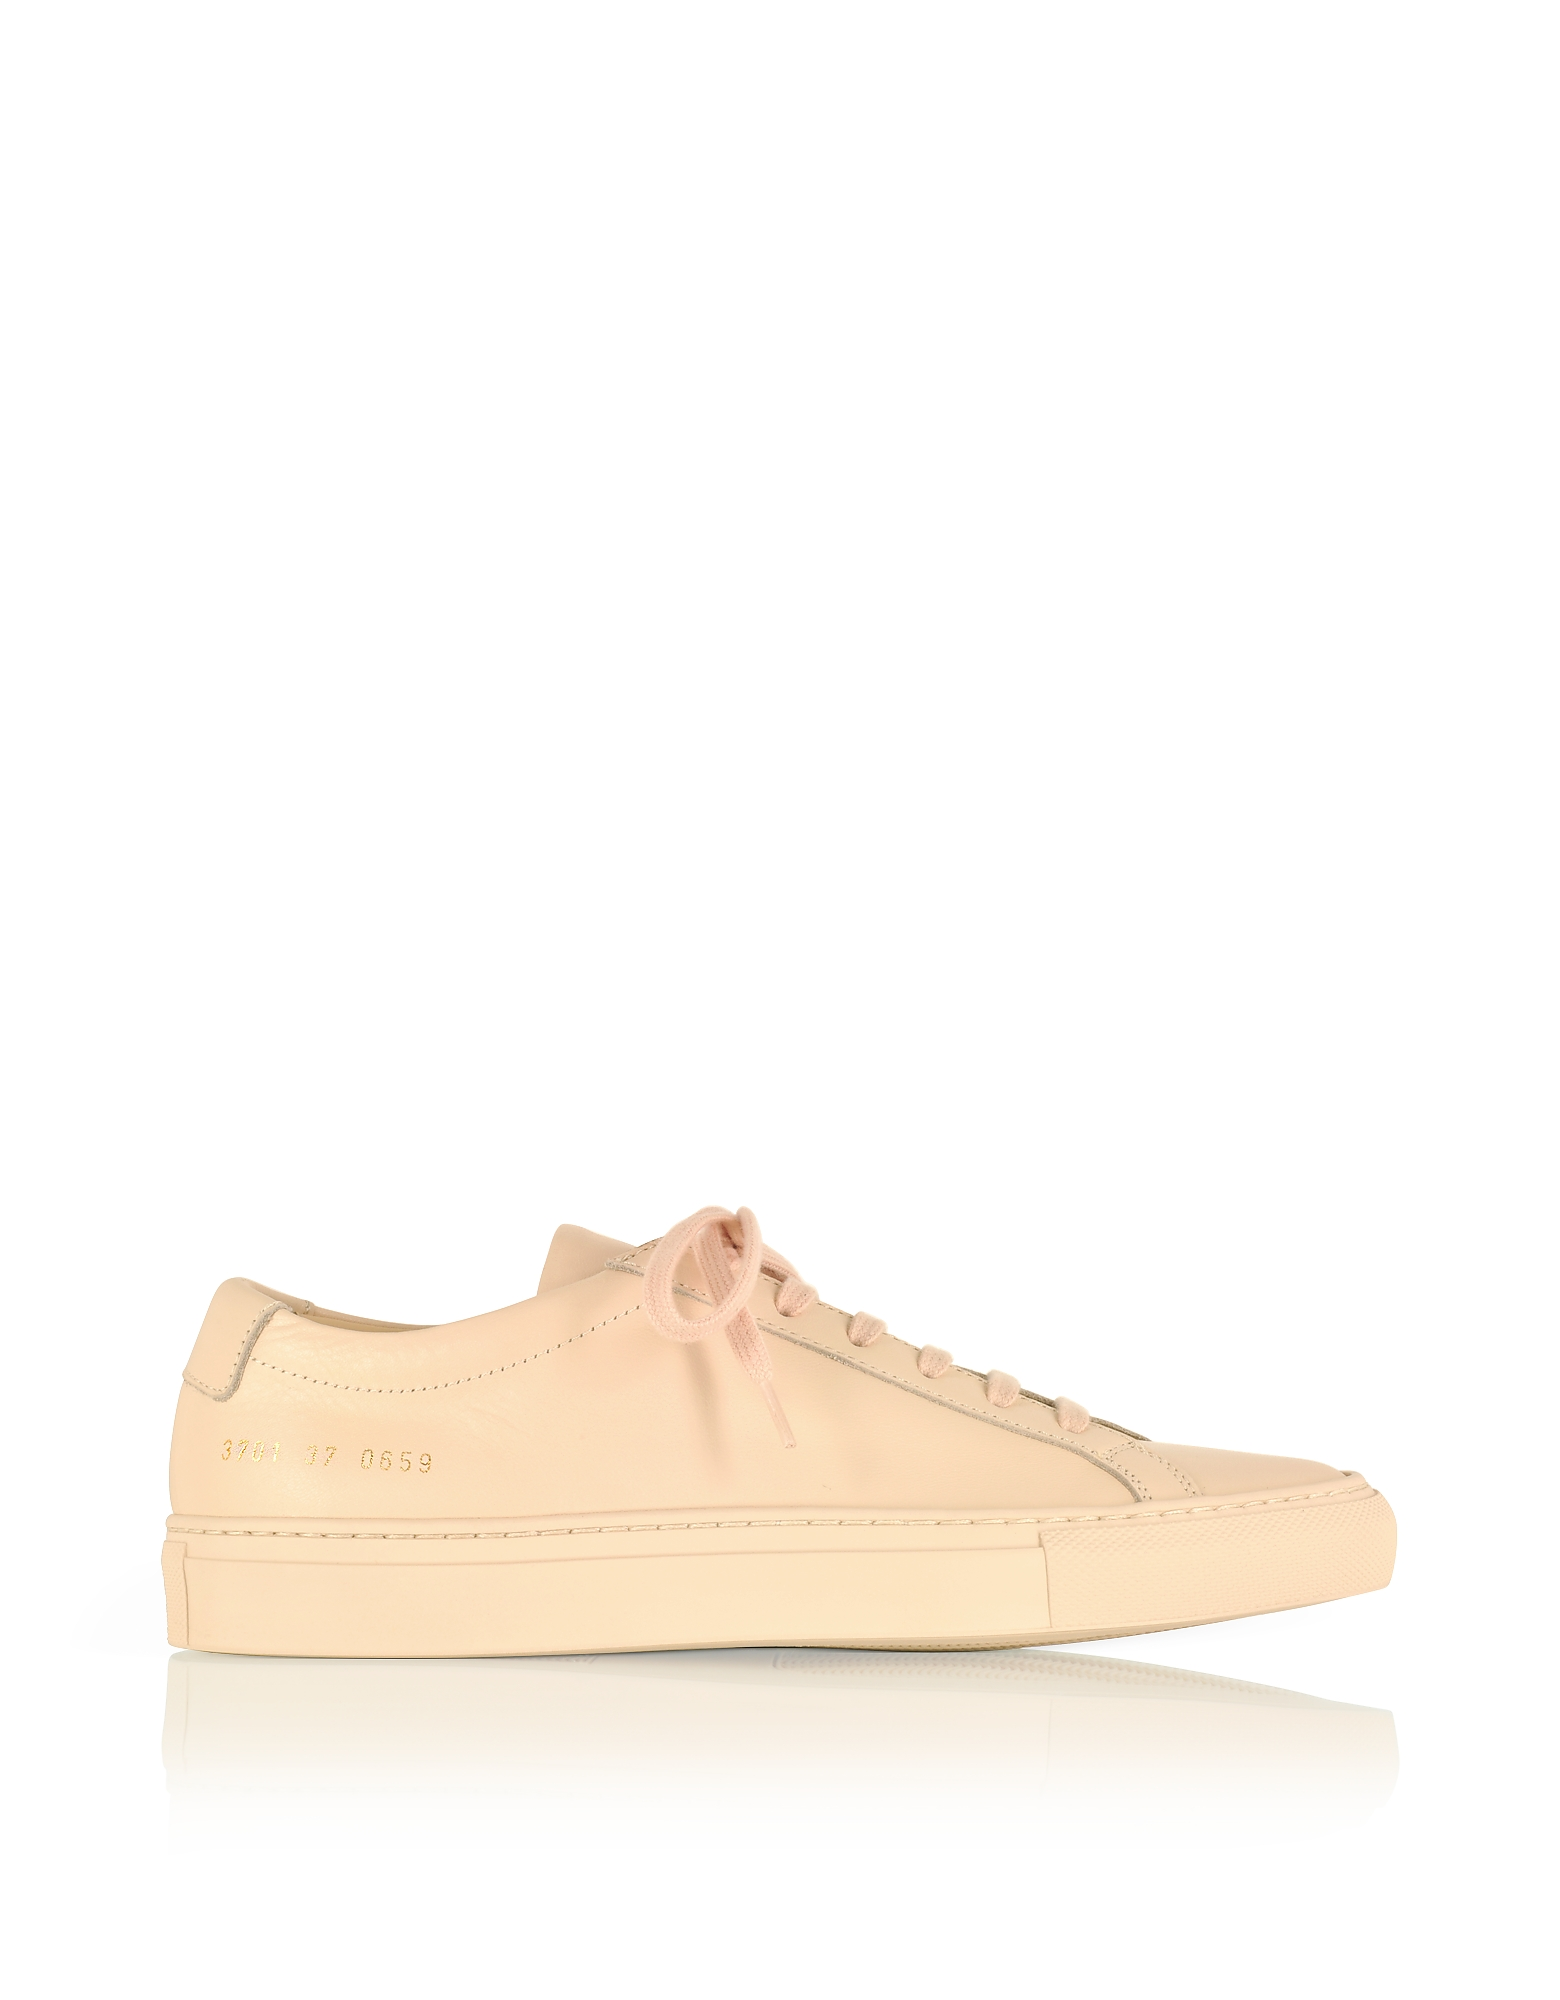 Common Projects Shoes, Nude Leather Achilles Original Low Top Women's Sneakers